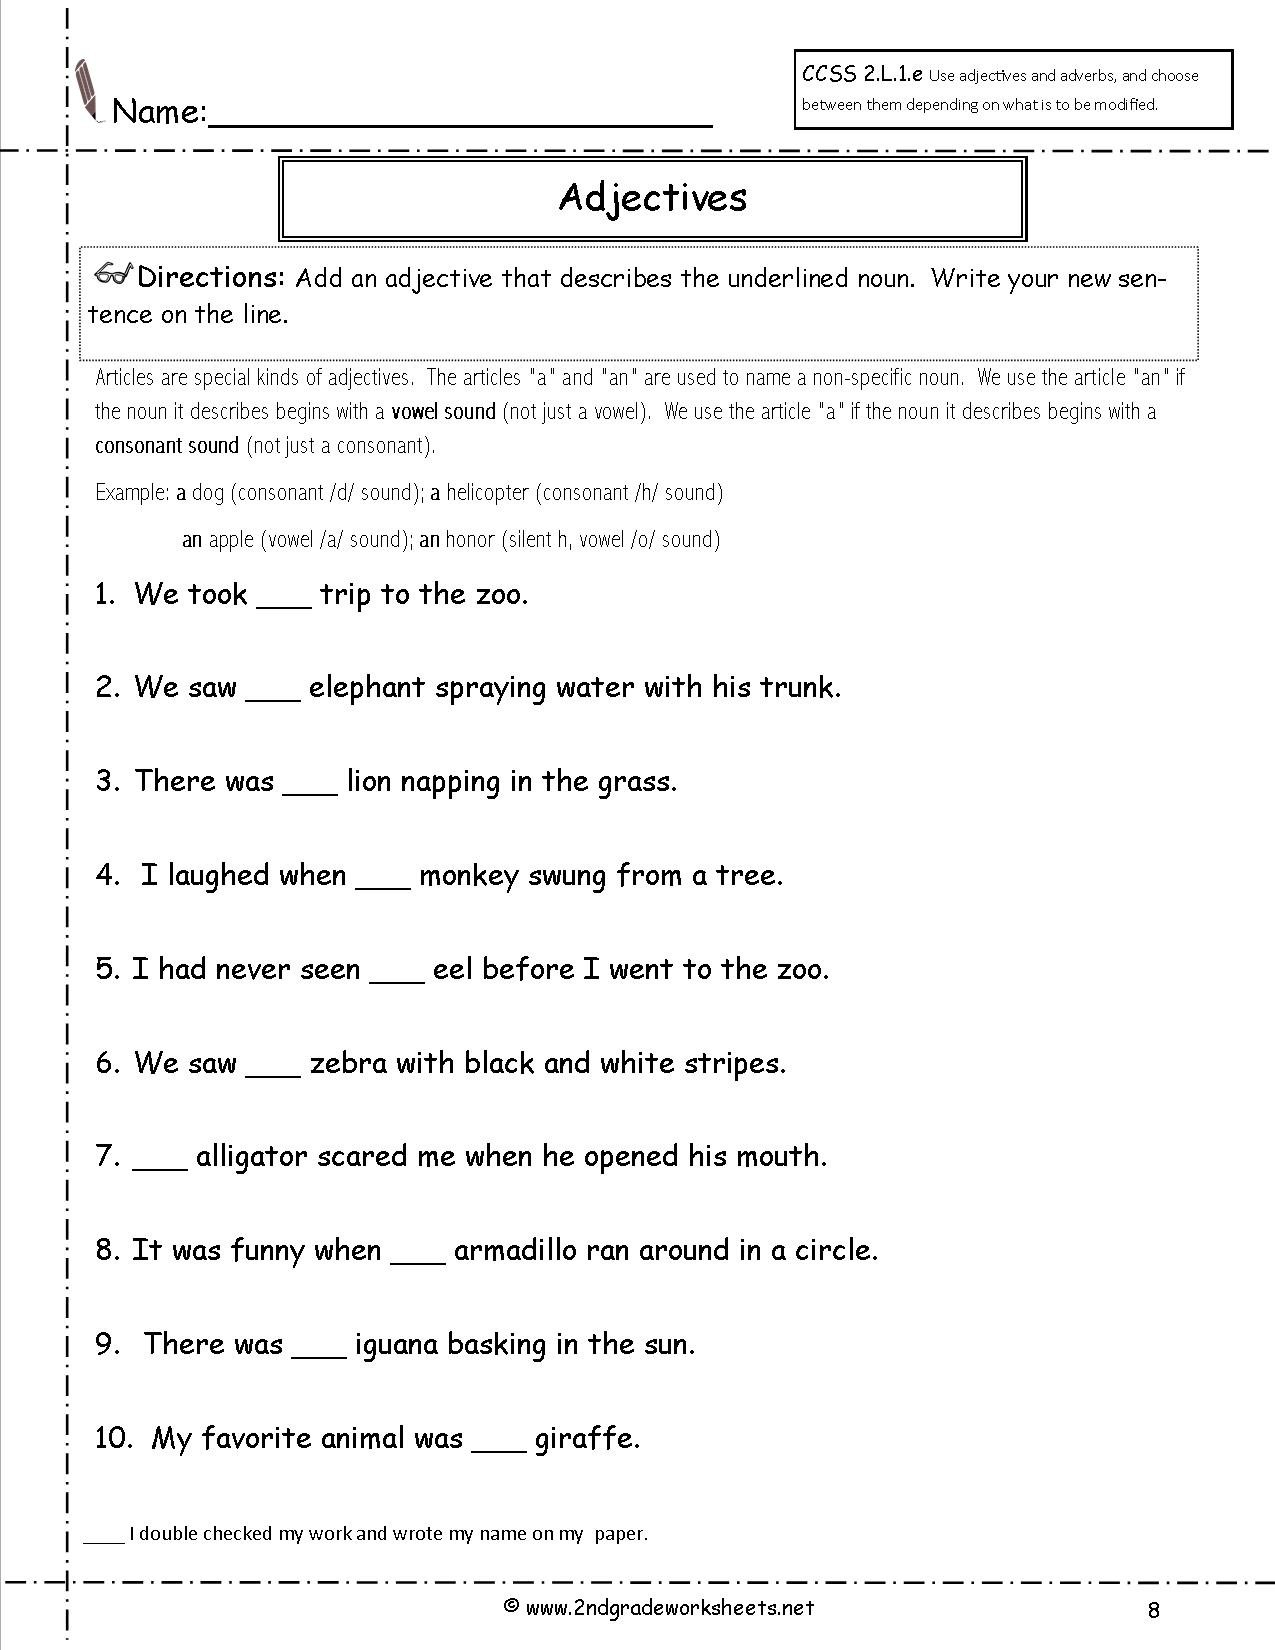 Printable English Worksheets